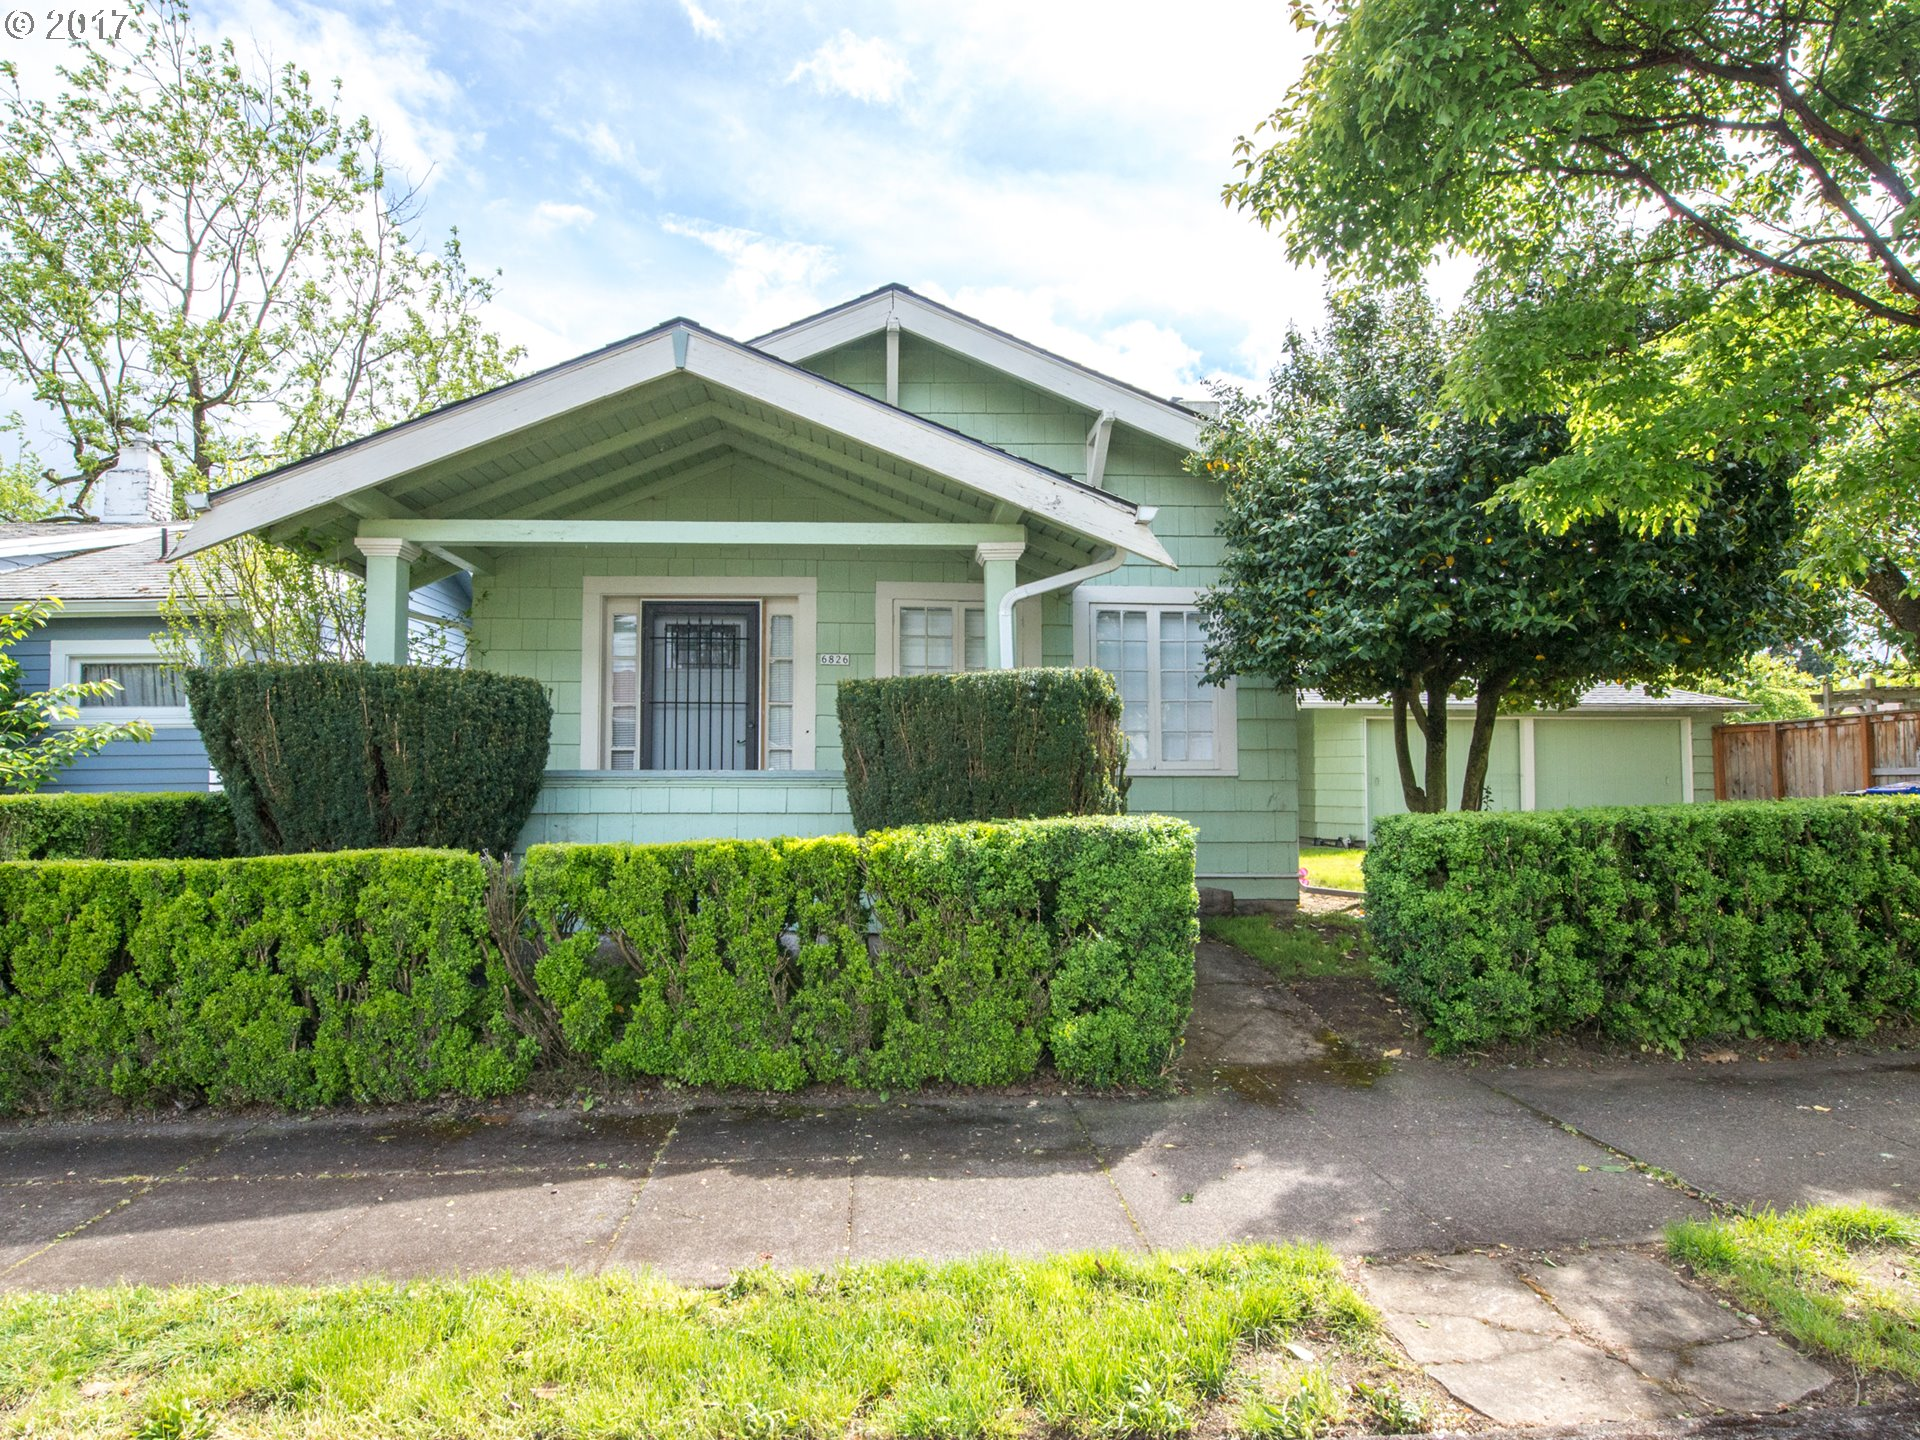 Piedmont Bungalow!  1919 built home cute as a pink button!!  Original detailing, wood burning fireplace, wood floors, old school kitchen, unfinishedbasement. Attached 2 car garage with breezeway on 2600 square foot lot. Charm, Charm, Charm! Sweet front porch + great street in NOPO.